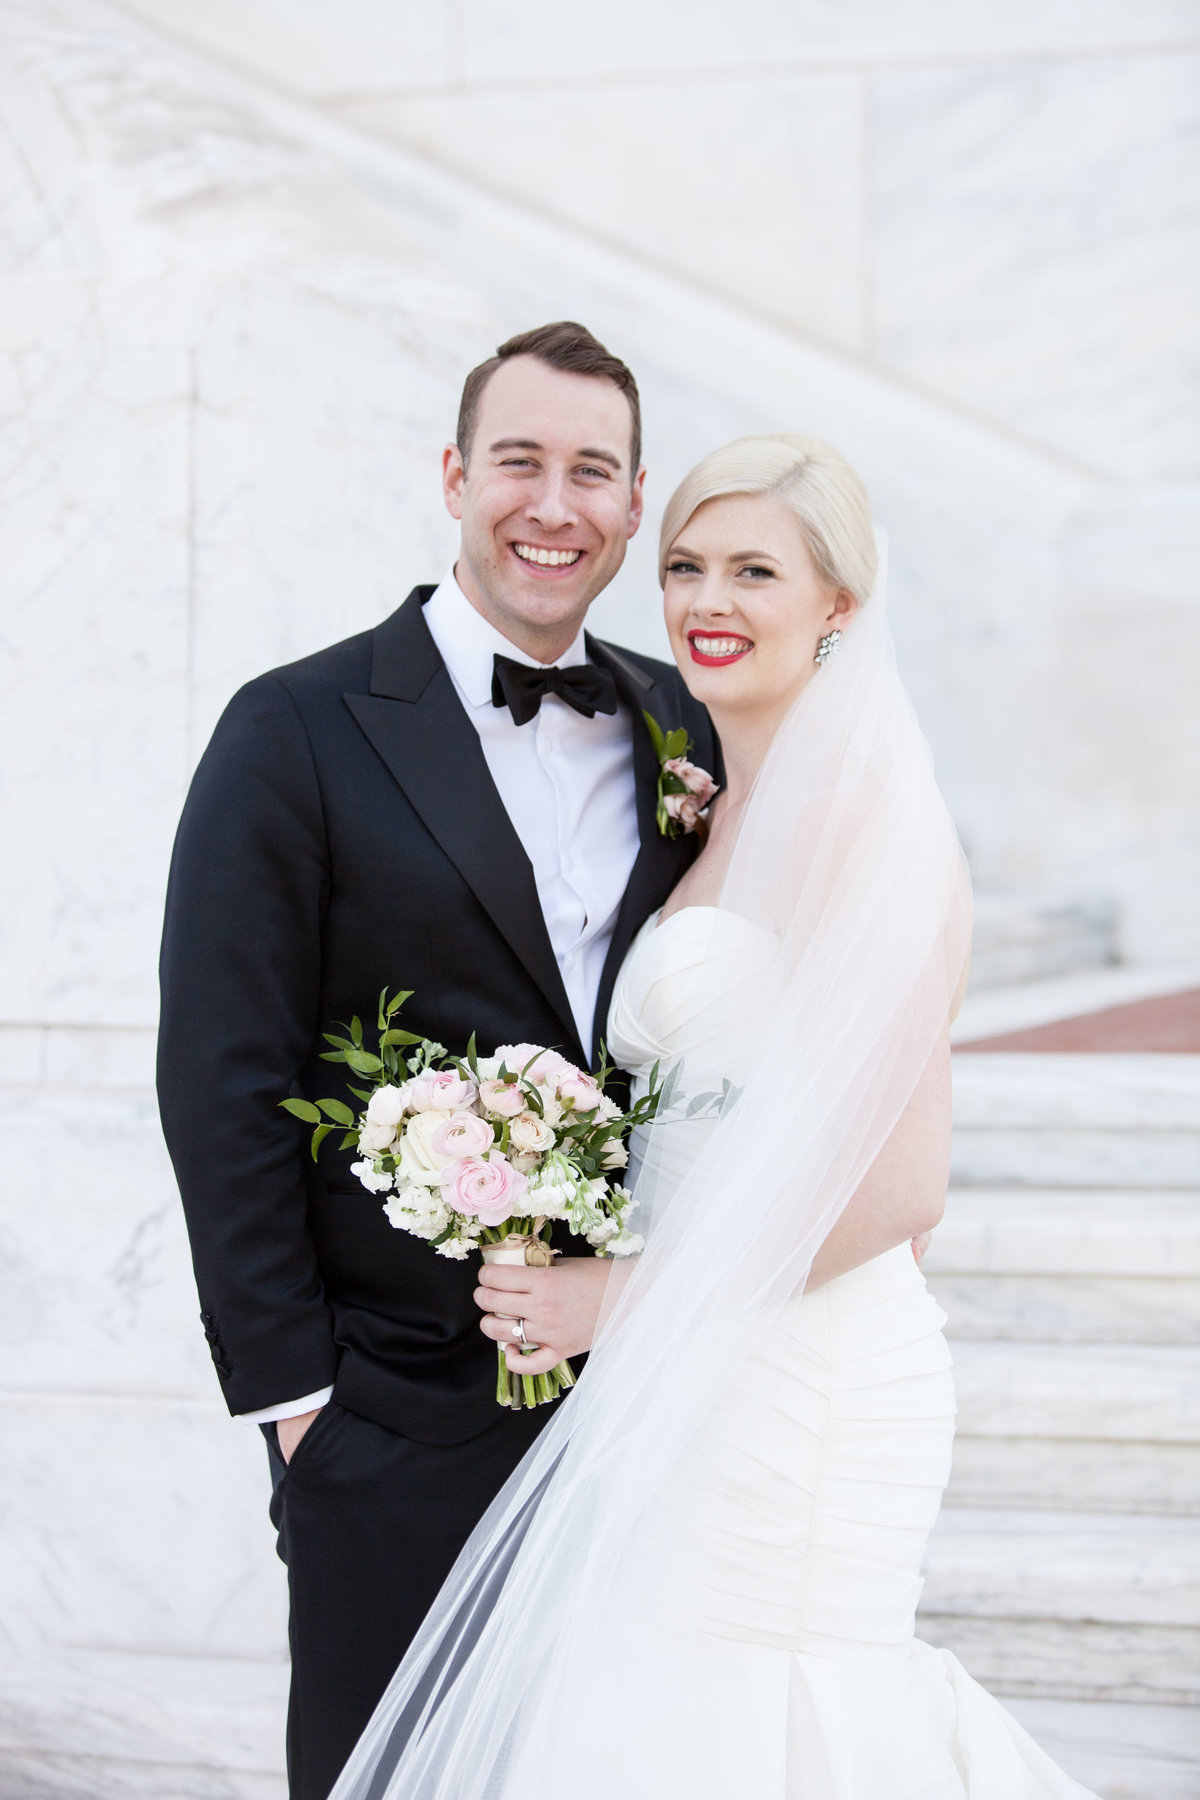 Cottrell Wedding - Natalie Probst Photography522